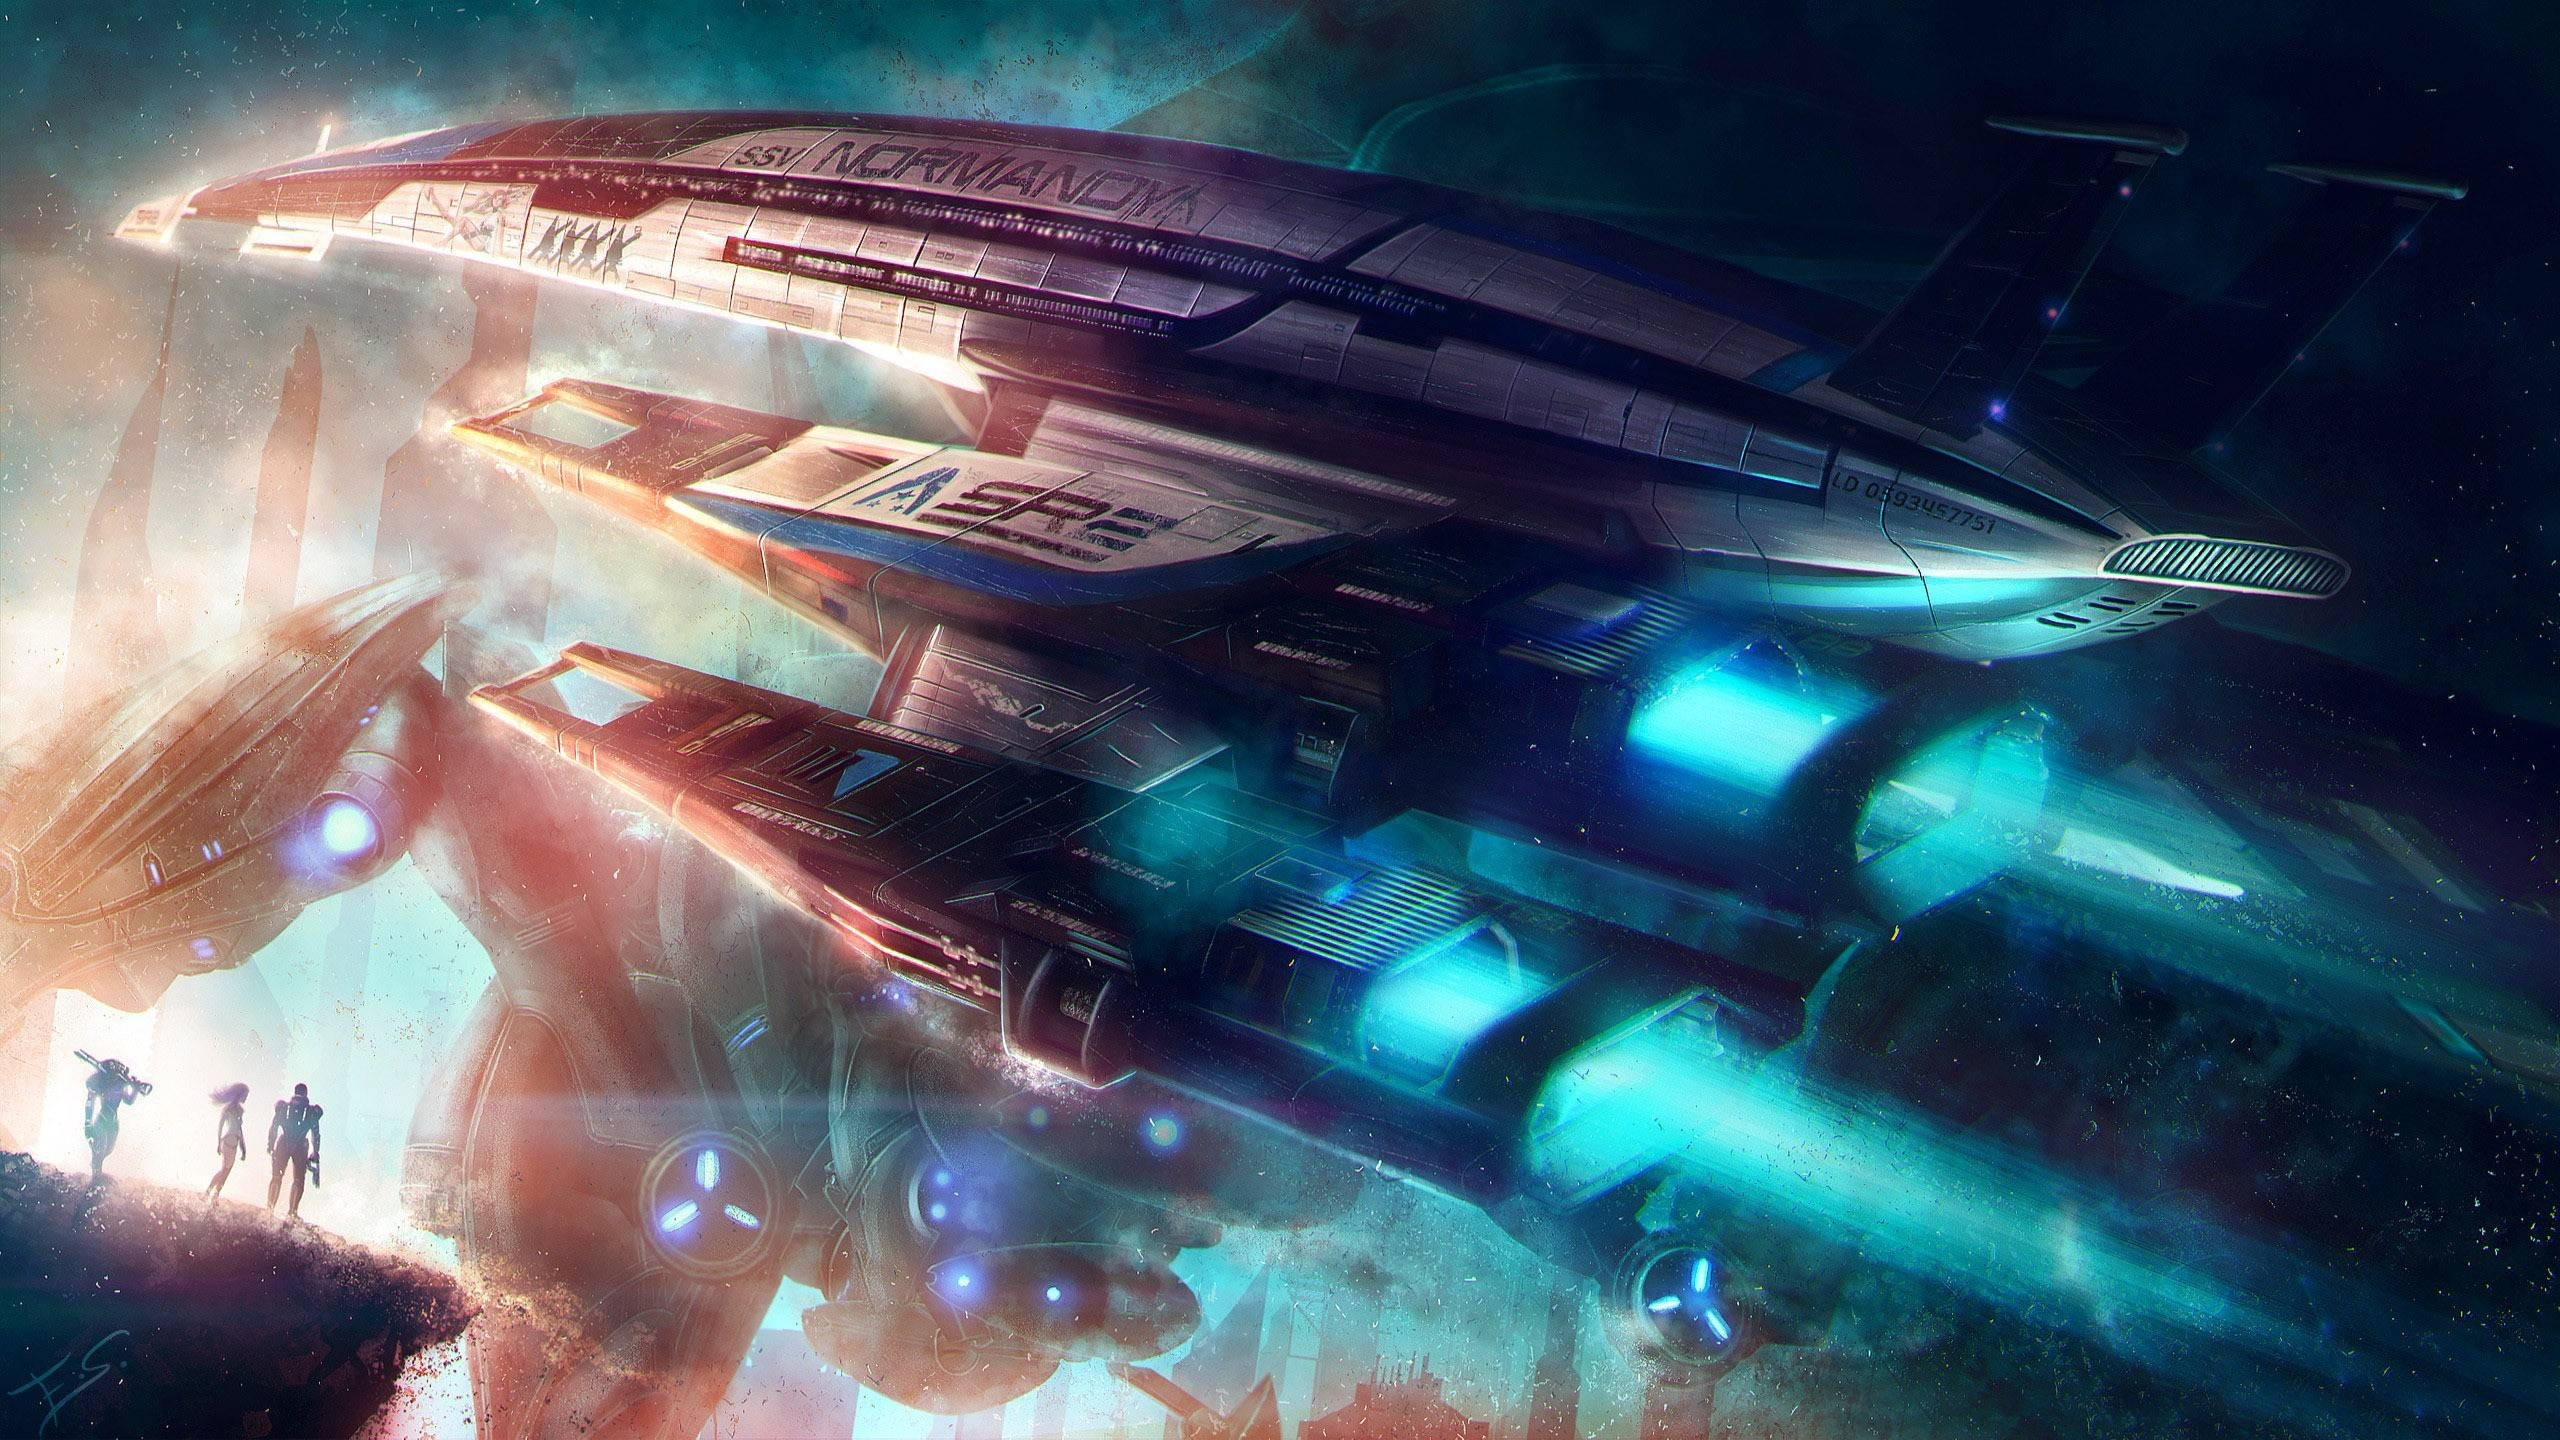 mass effect normandy wallpapers - wallpaper cave